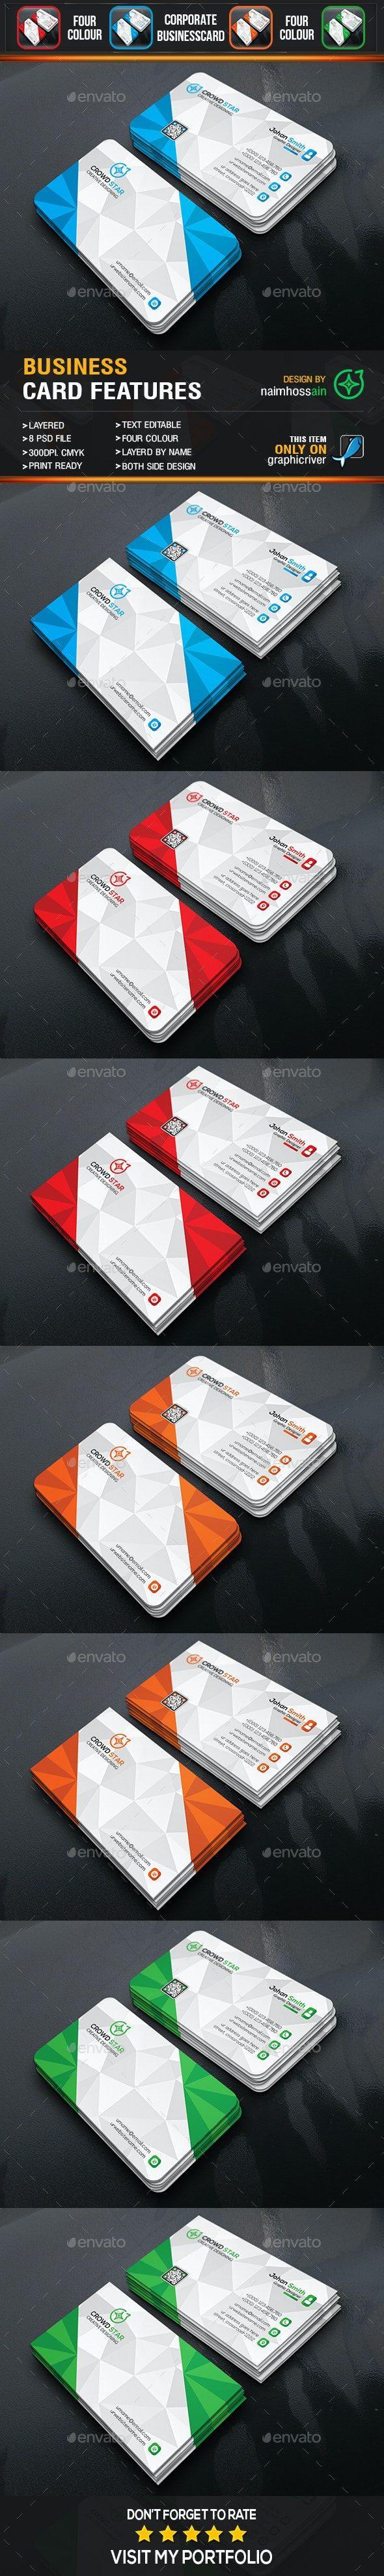 Corporate 3D Business Card - Business Cards Print Templates